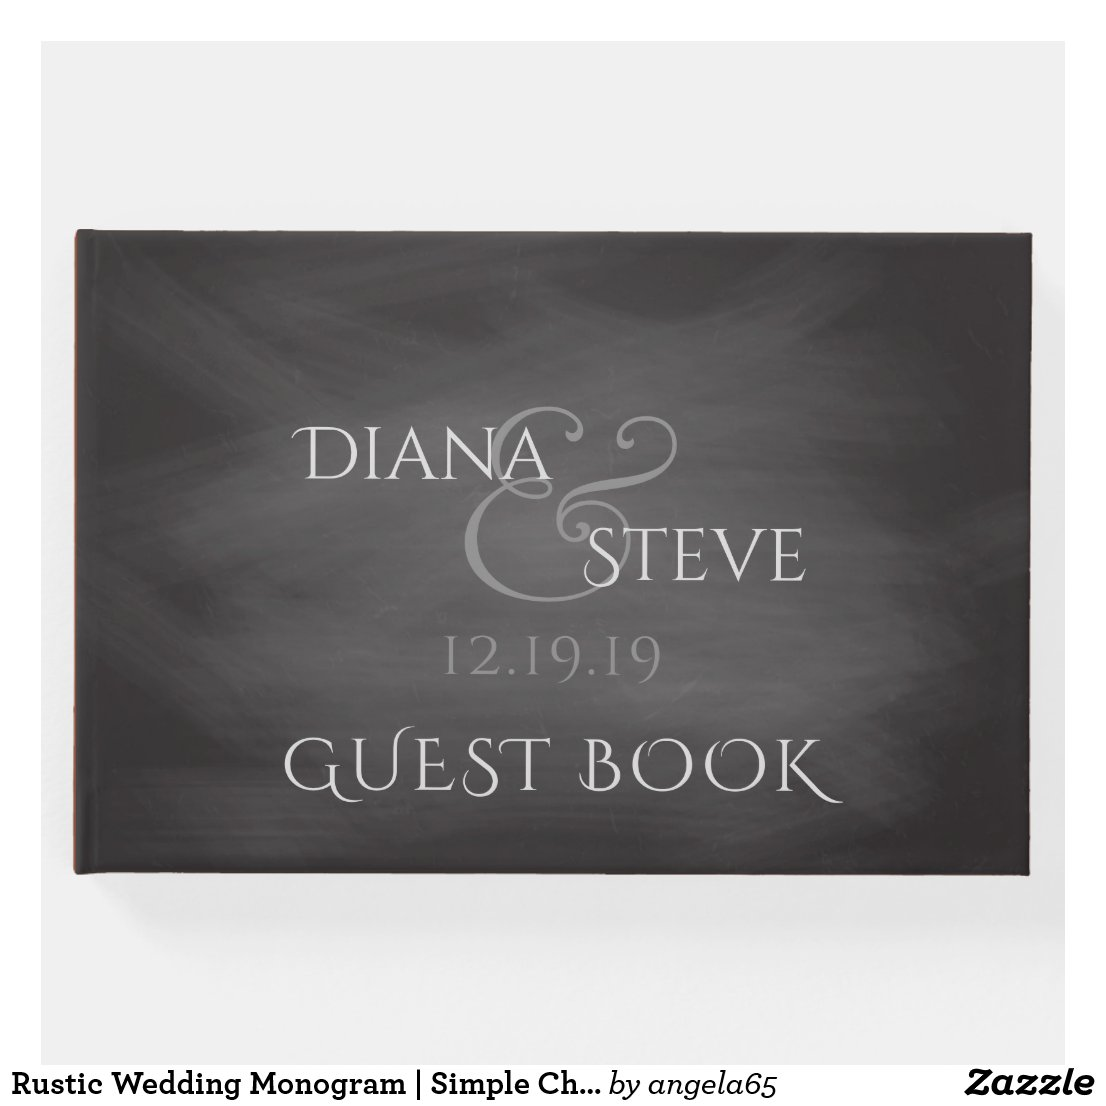 Rustic Wedding Monogram | Simple Chalkboard Guest Book